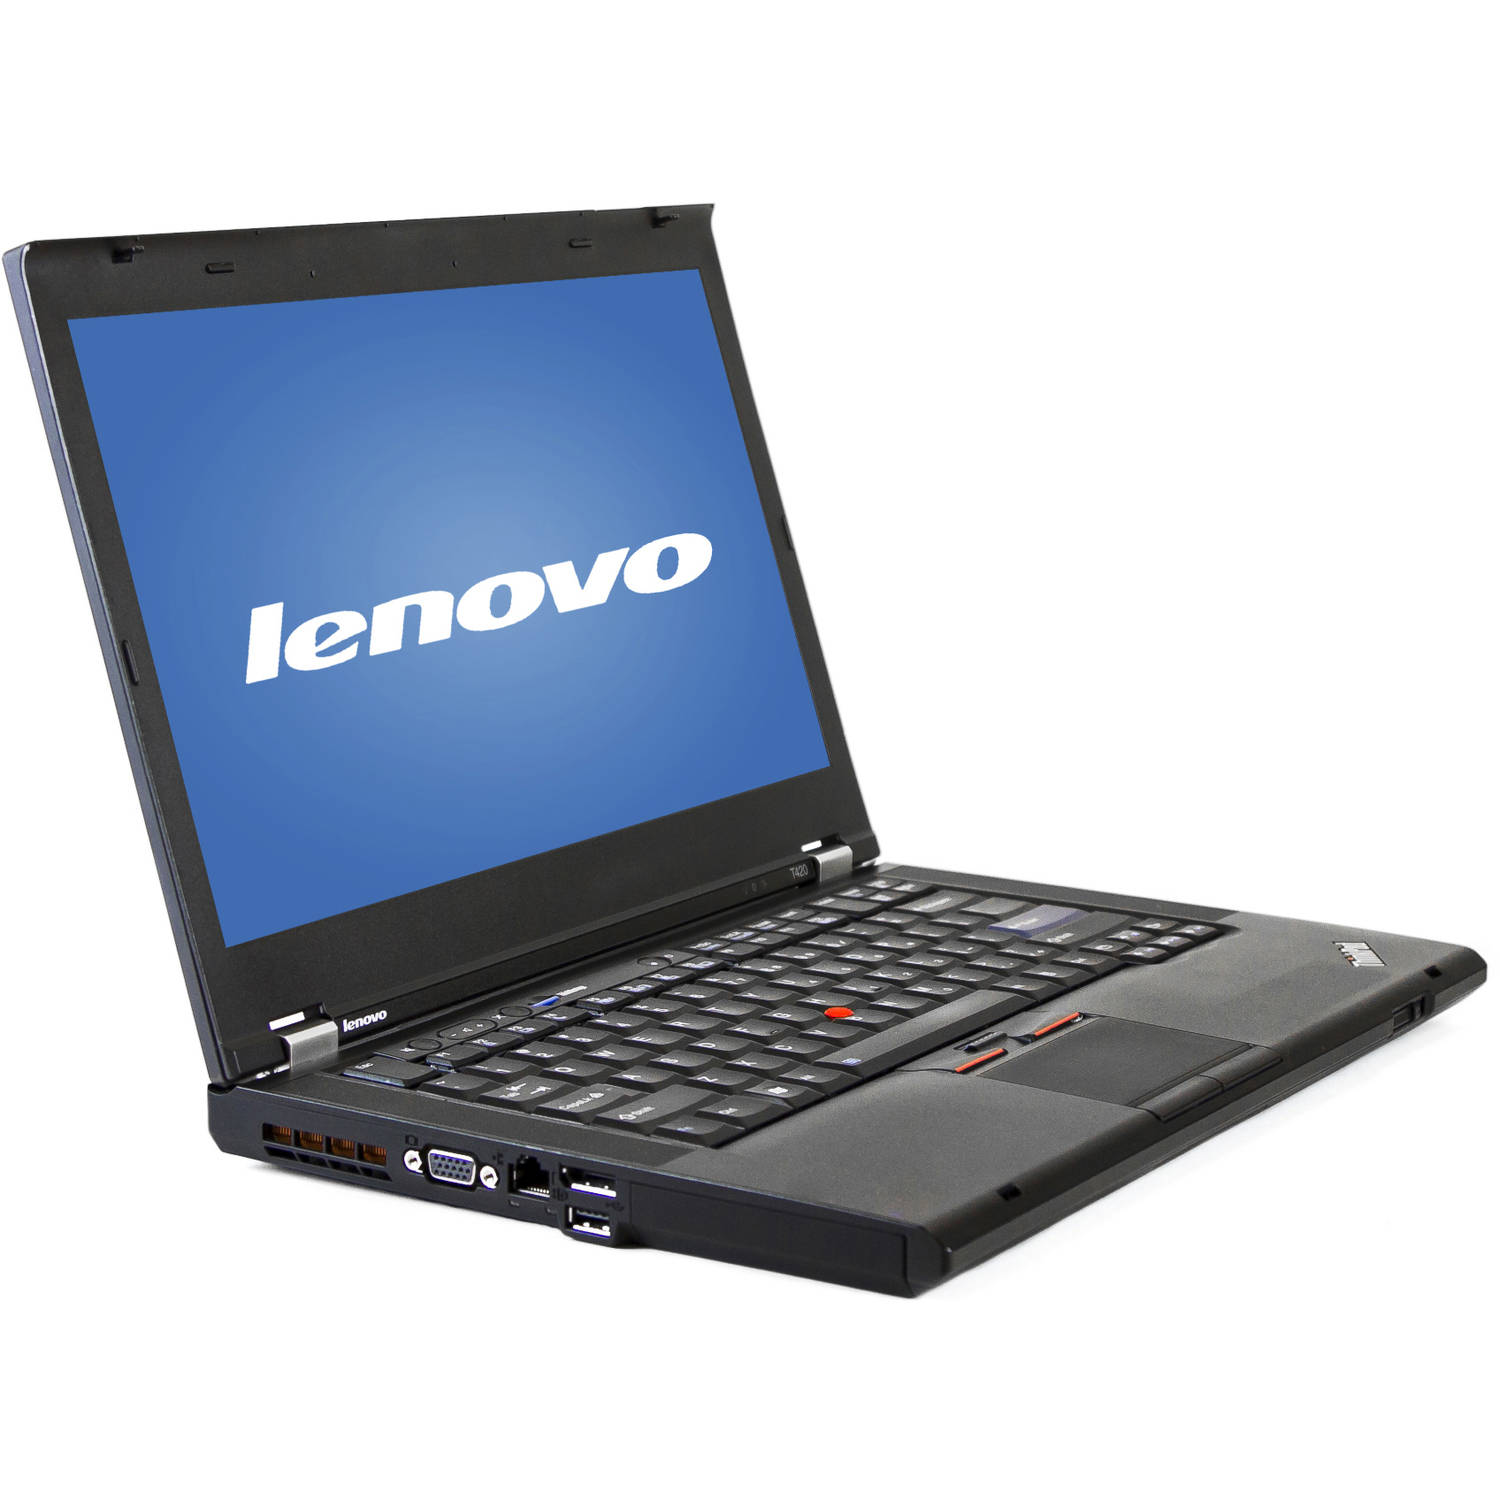 "Refurbished Lenovo Black 14"" ThinkPad T420 WA5-0960 Laptop PC with Intel Core i5-2410M Processor, 6GB Memory, 500GB Hard Drive and Windows 10 Home"